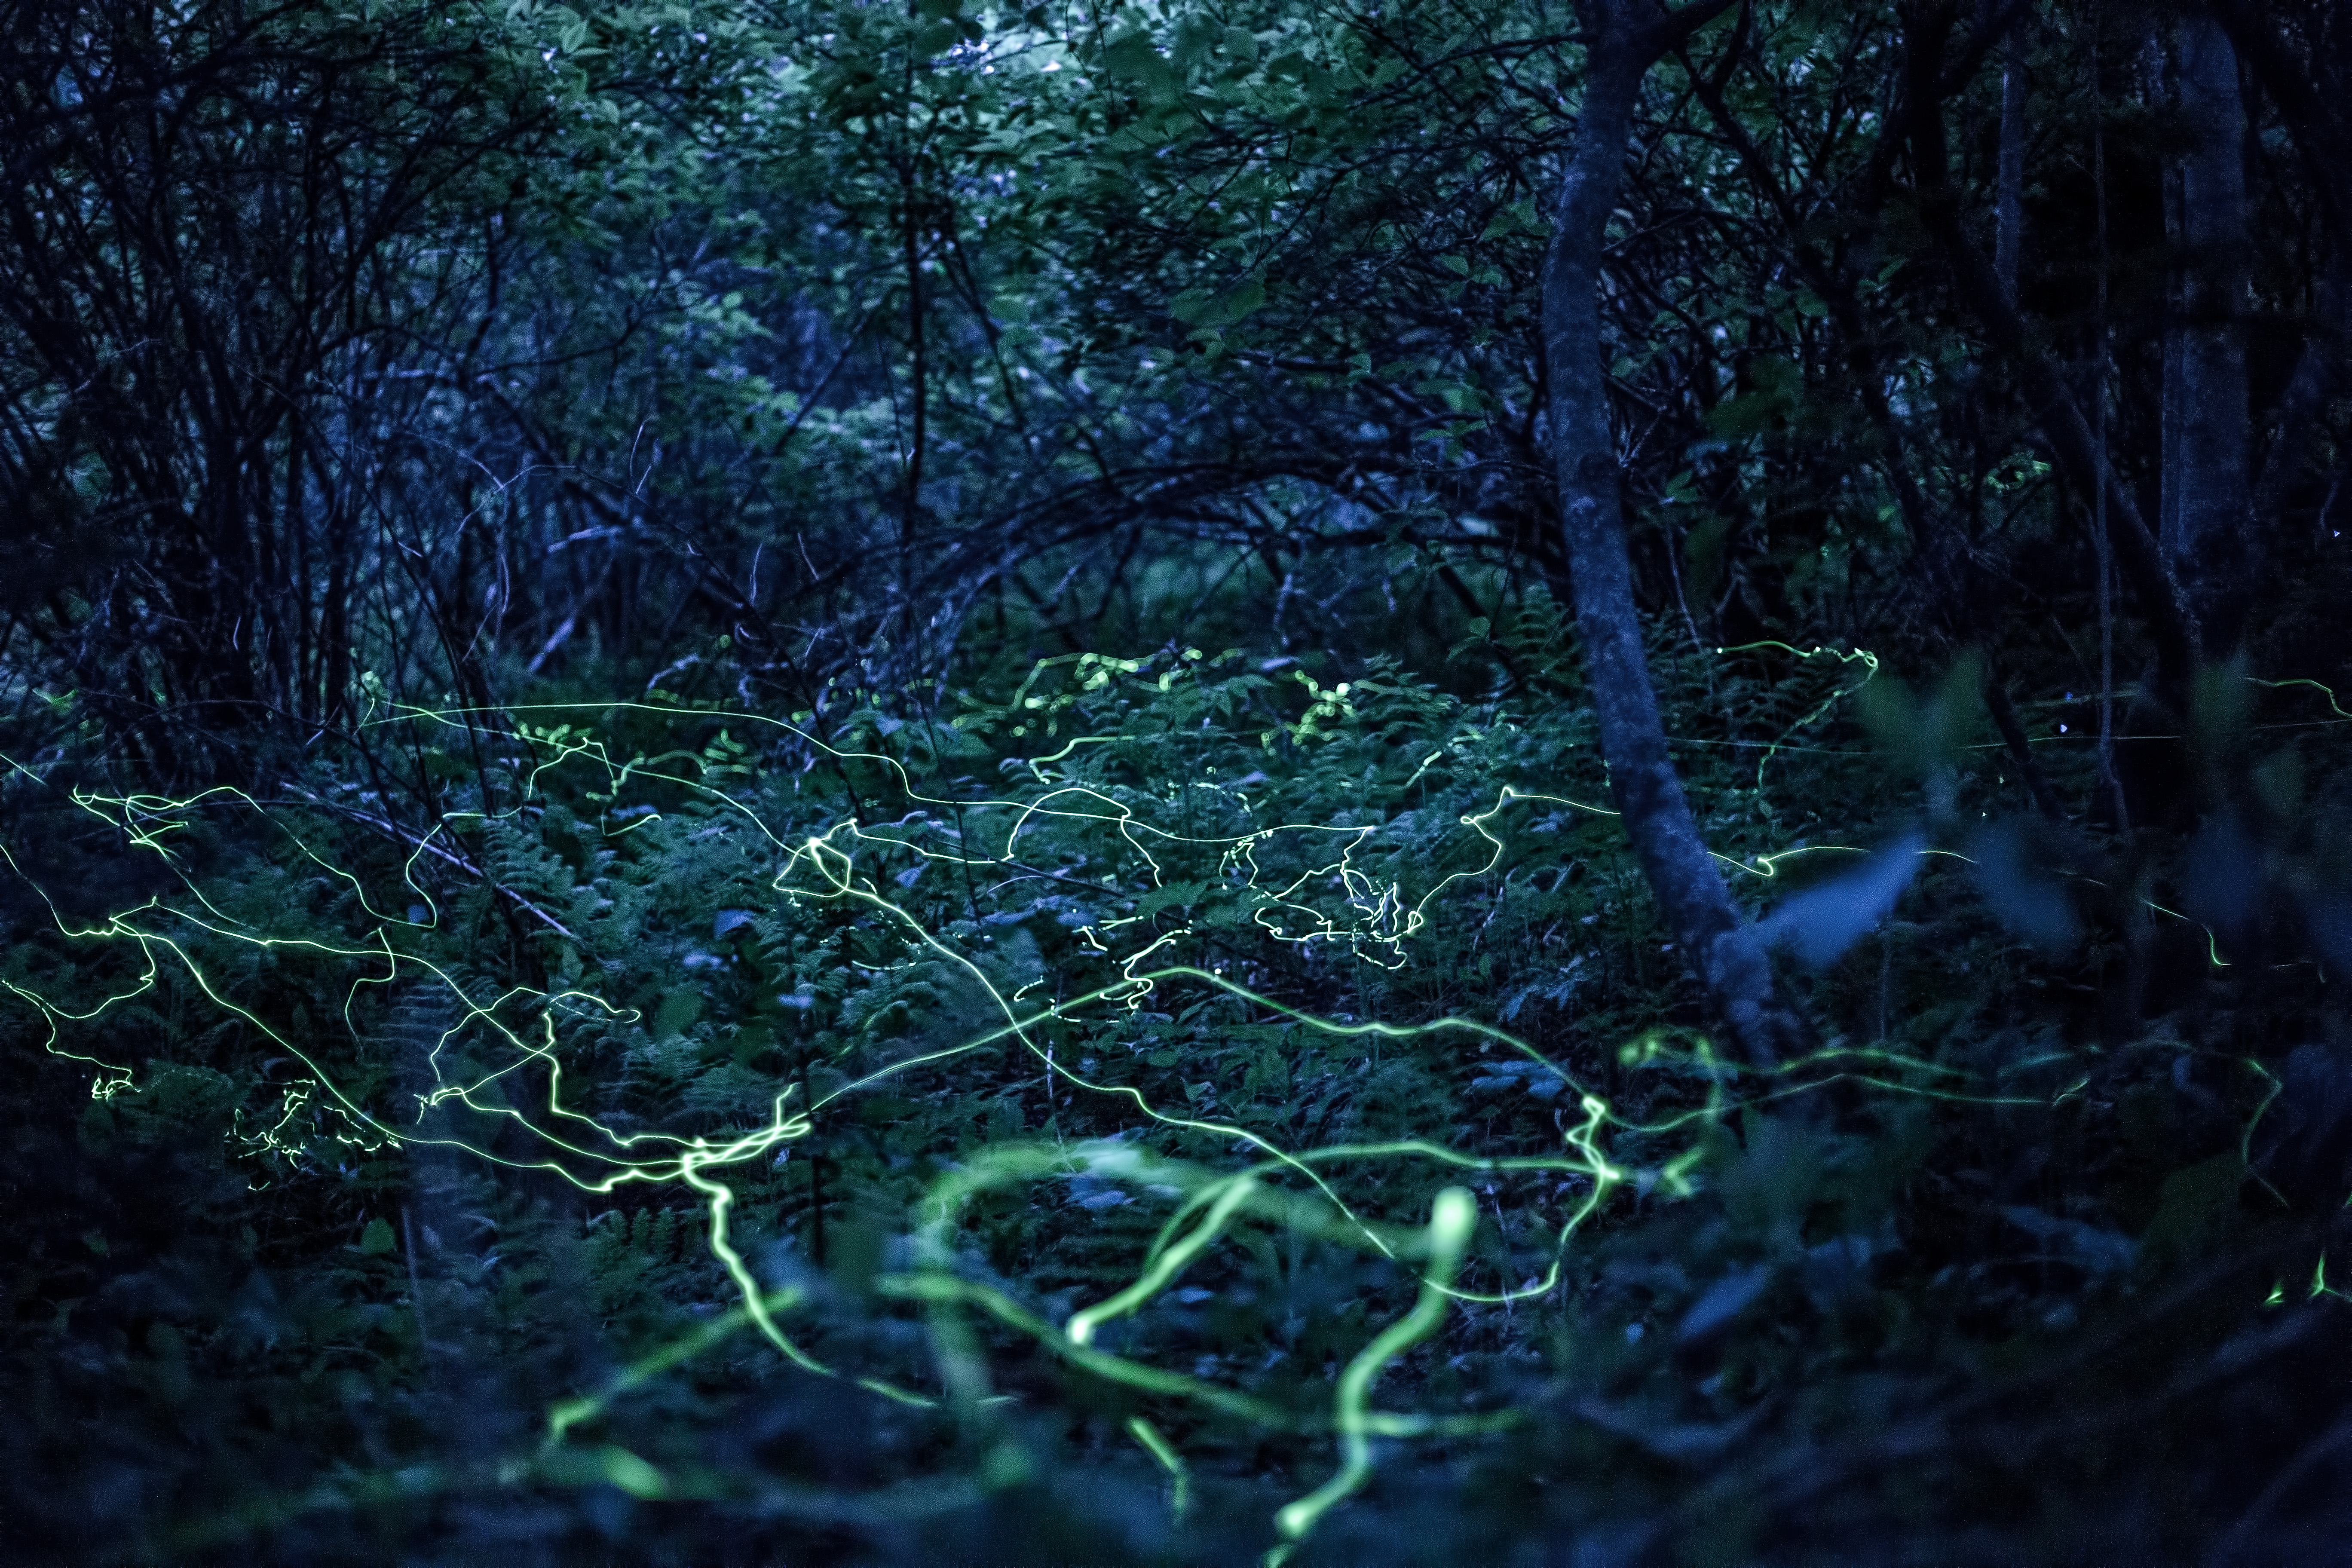 Phausis reticulata, the blue ghost fireflies, hover just above the ground in search of mates, creating an unforgettable eerie yet friendly glow. Photo courtesy of Radim Schreiber, FireflyExperience.org.